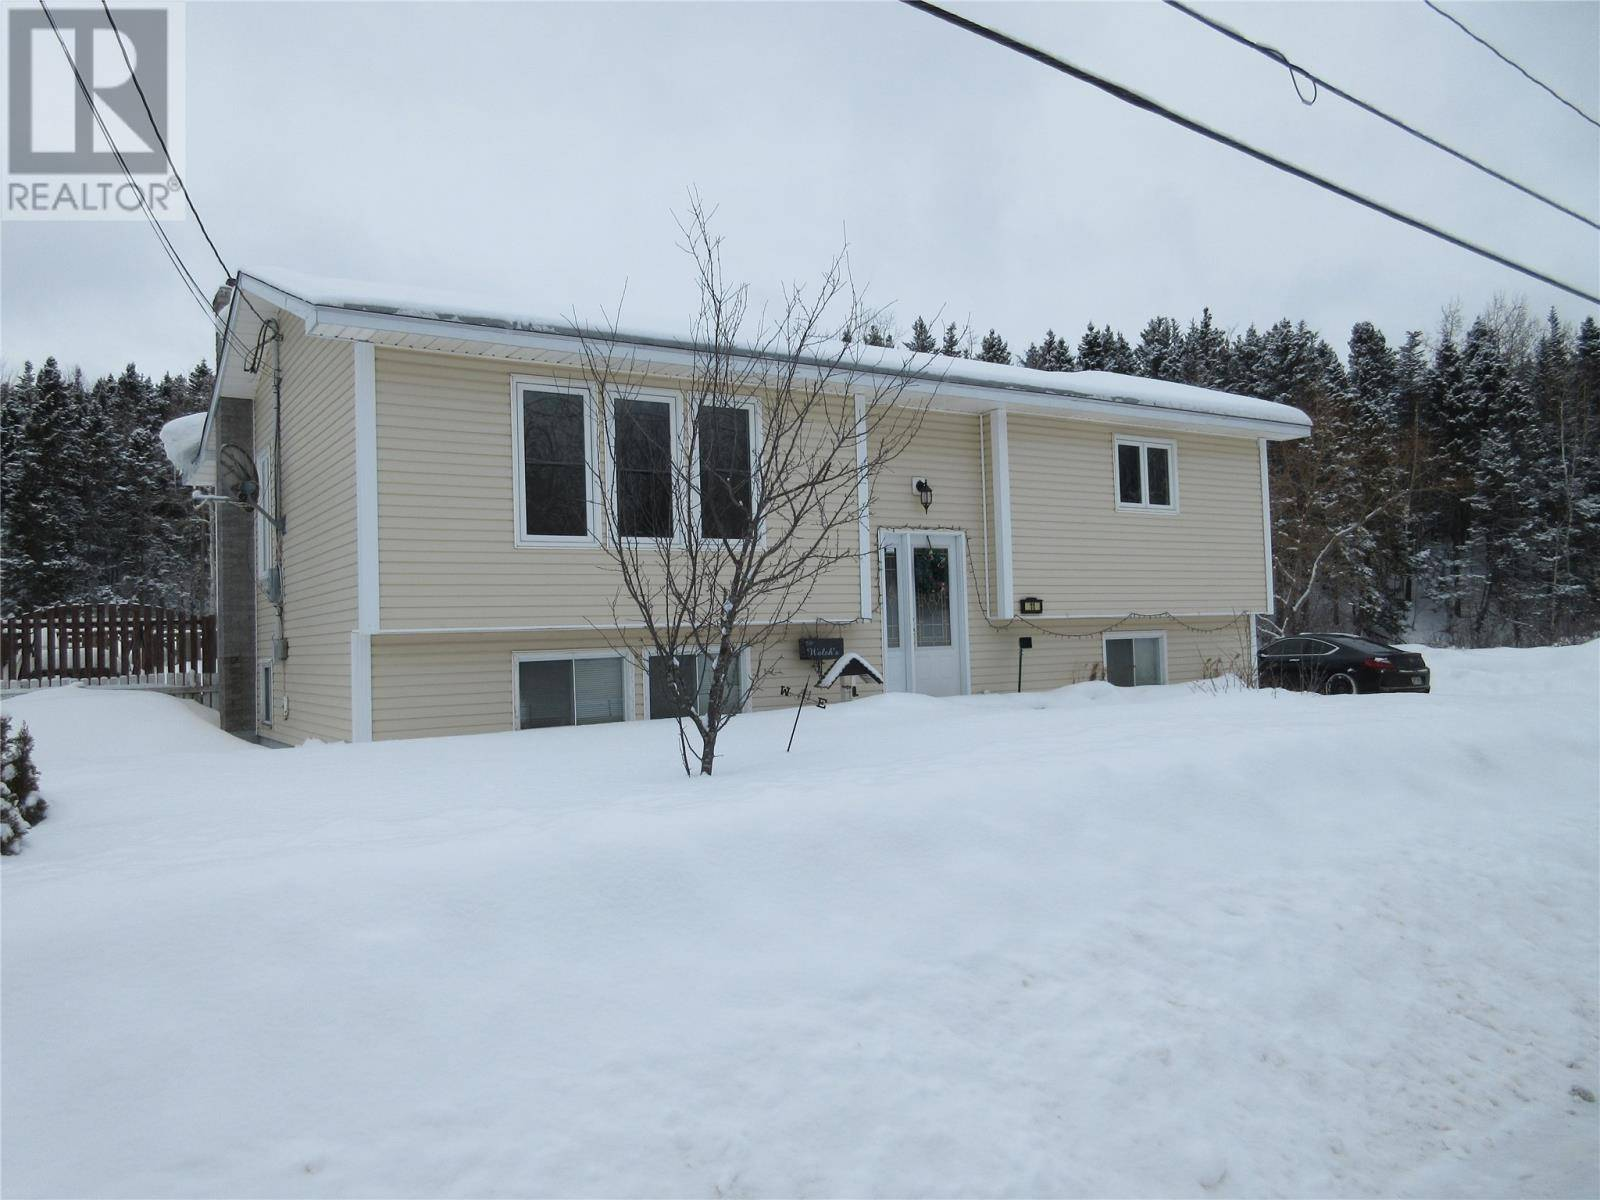 House for sale at 11 Valleyview Rd Bishop's Falls Newfoundland - MLS: 1211435